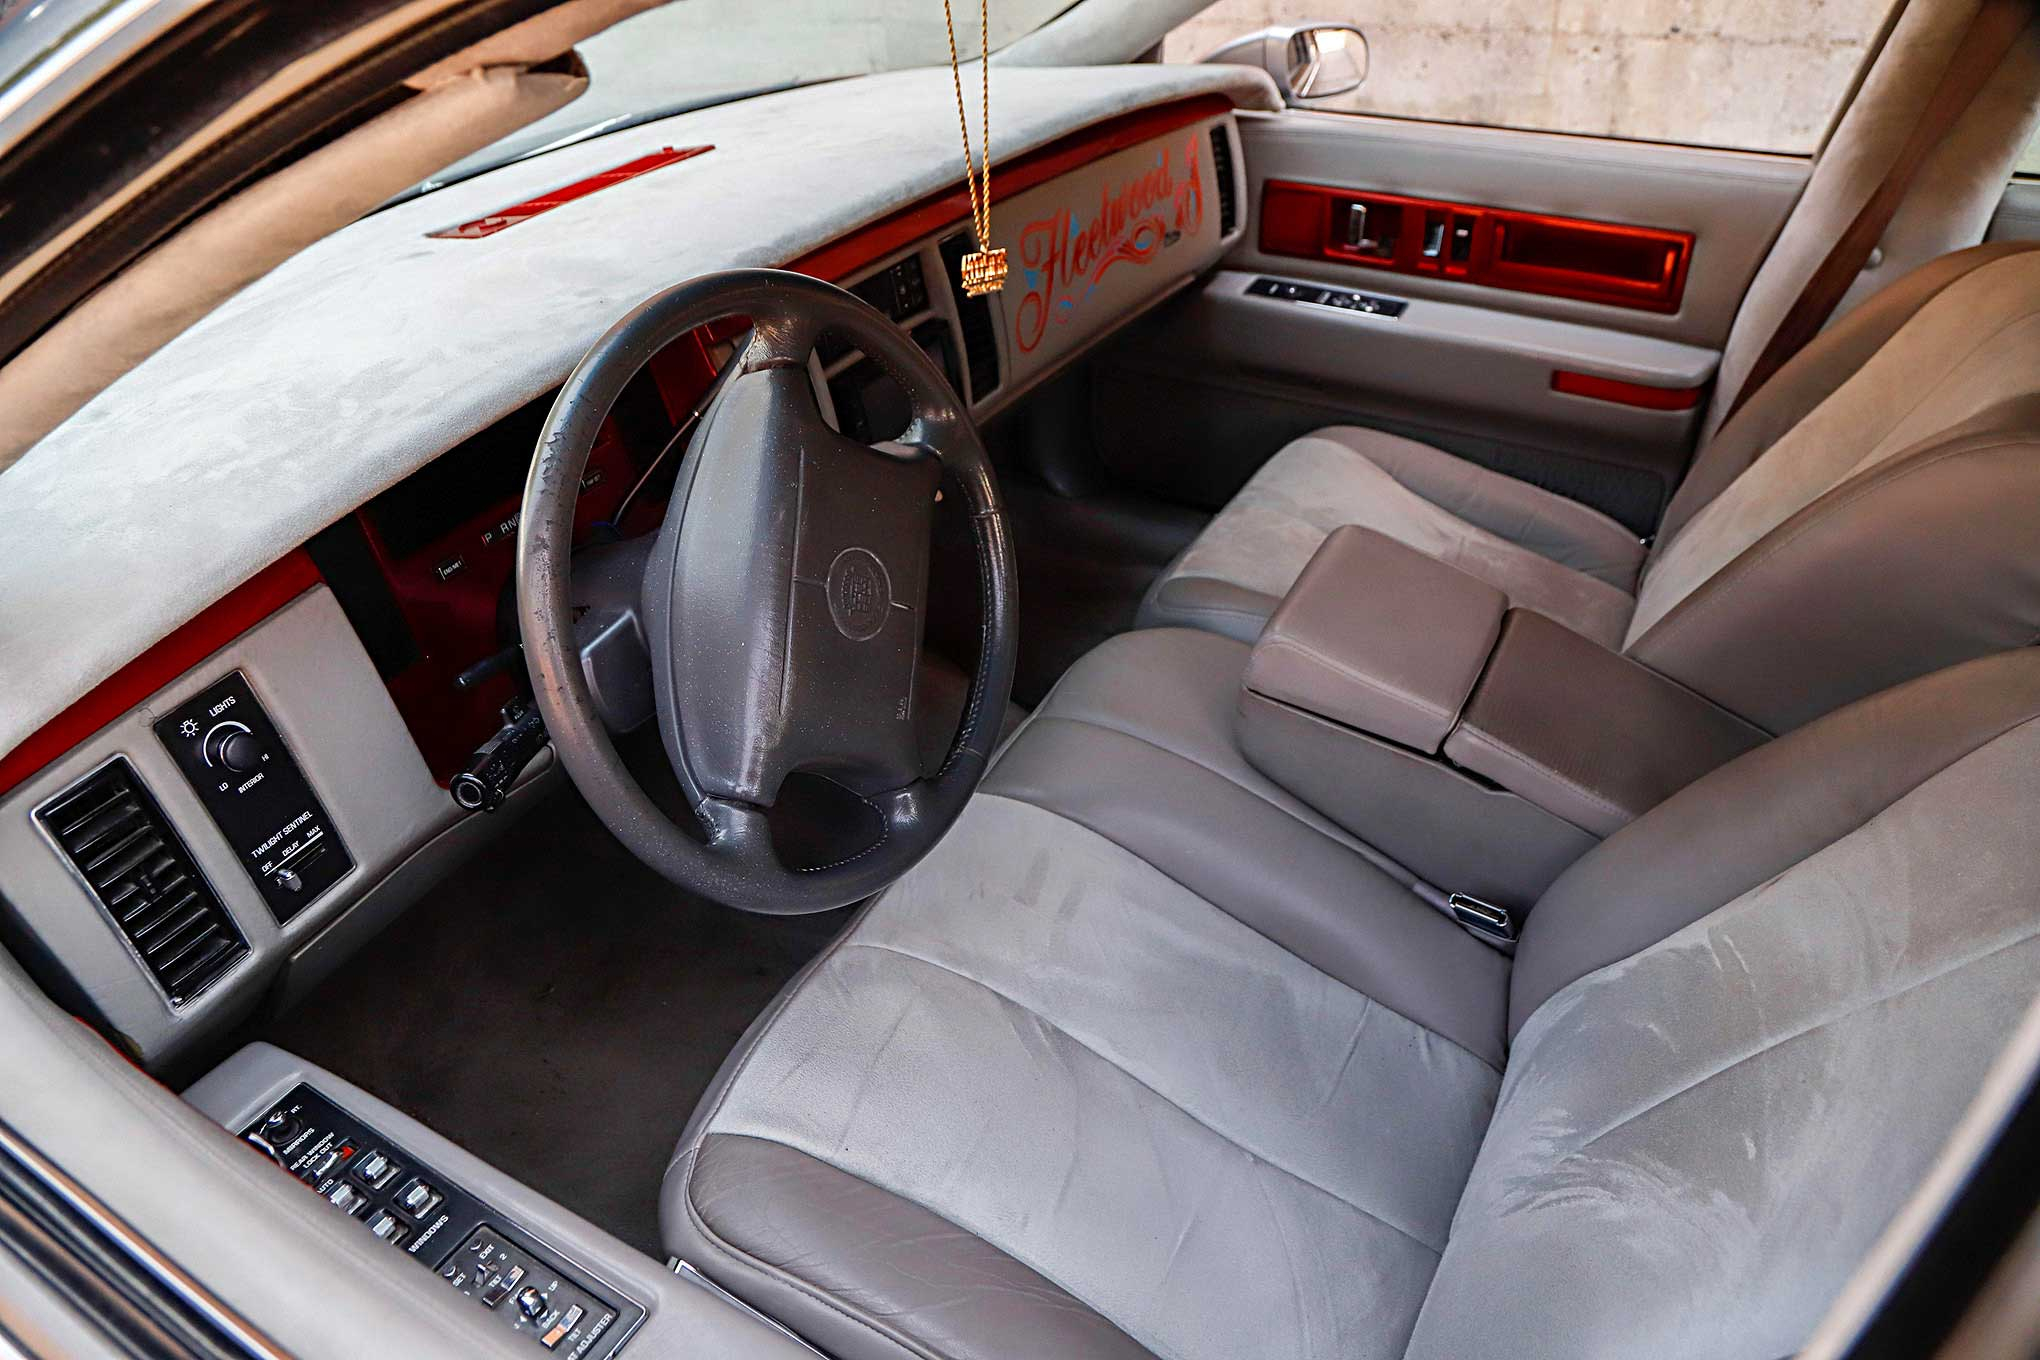 1994 cadillac fleetwood interior